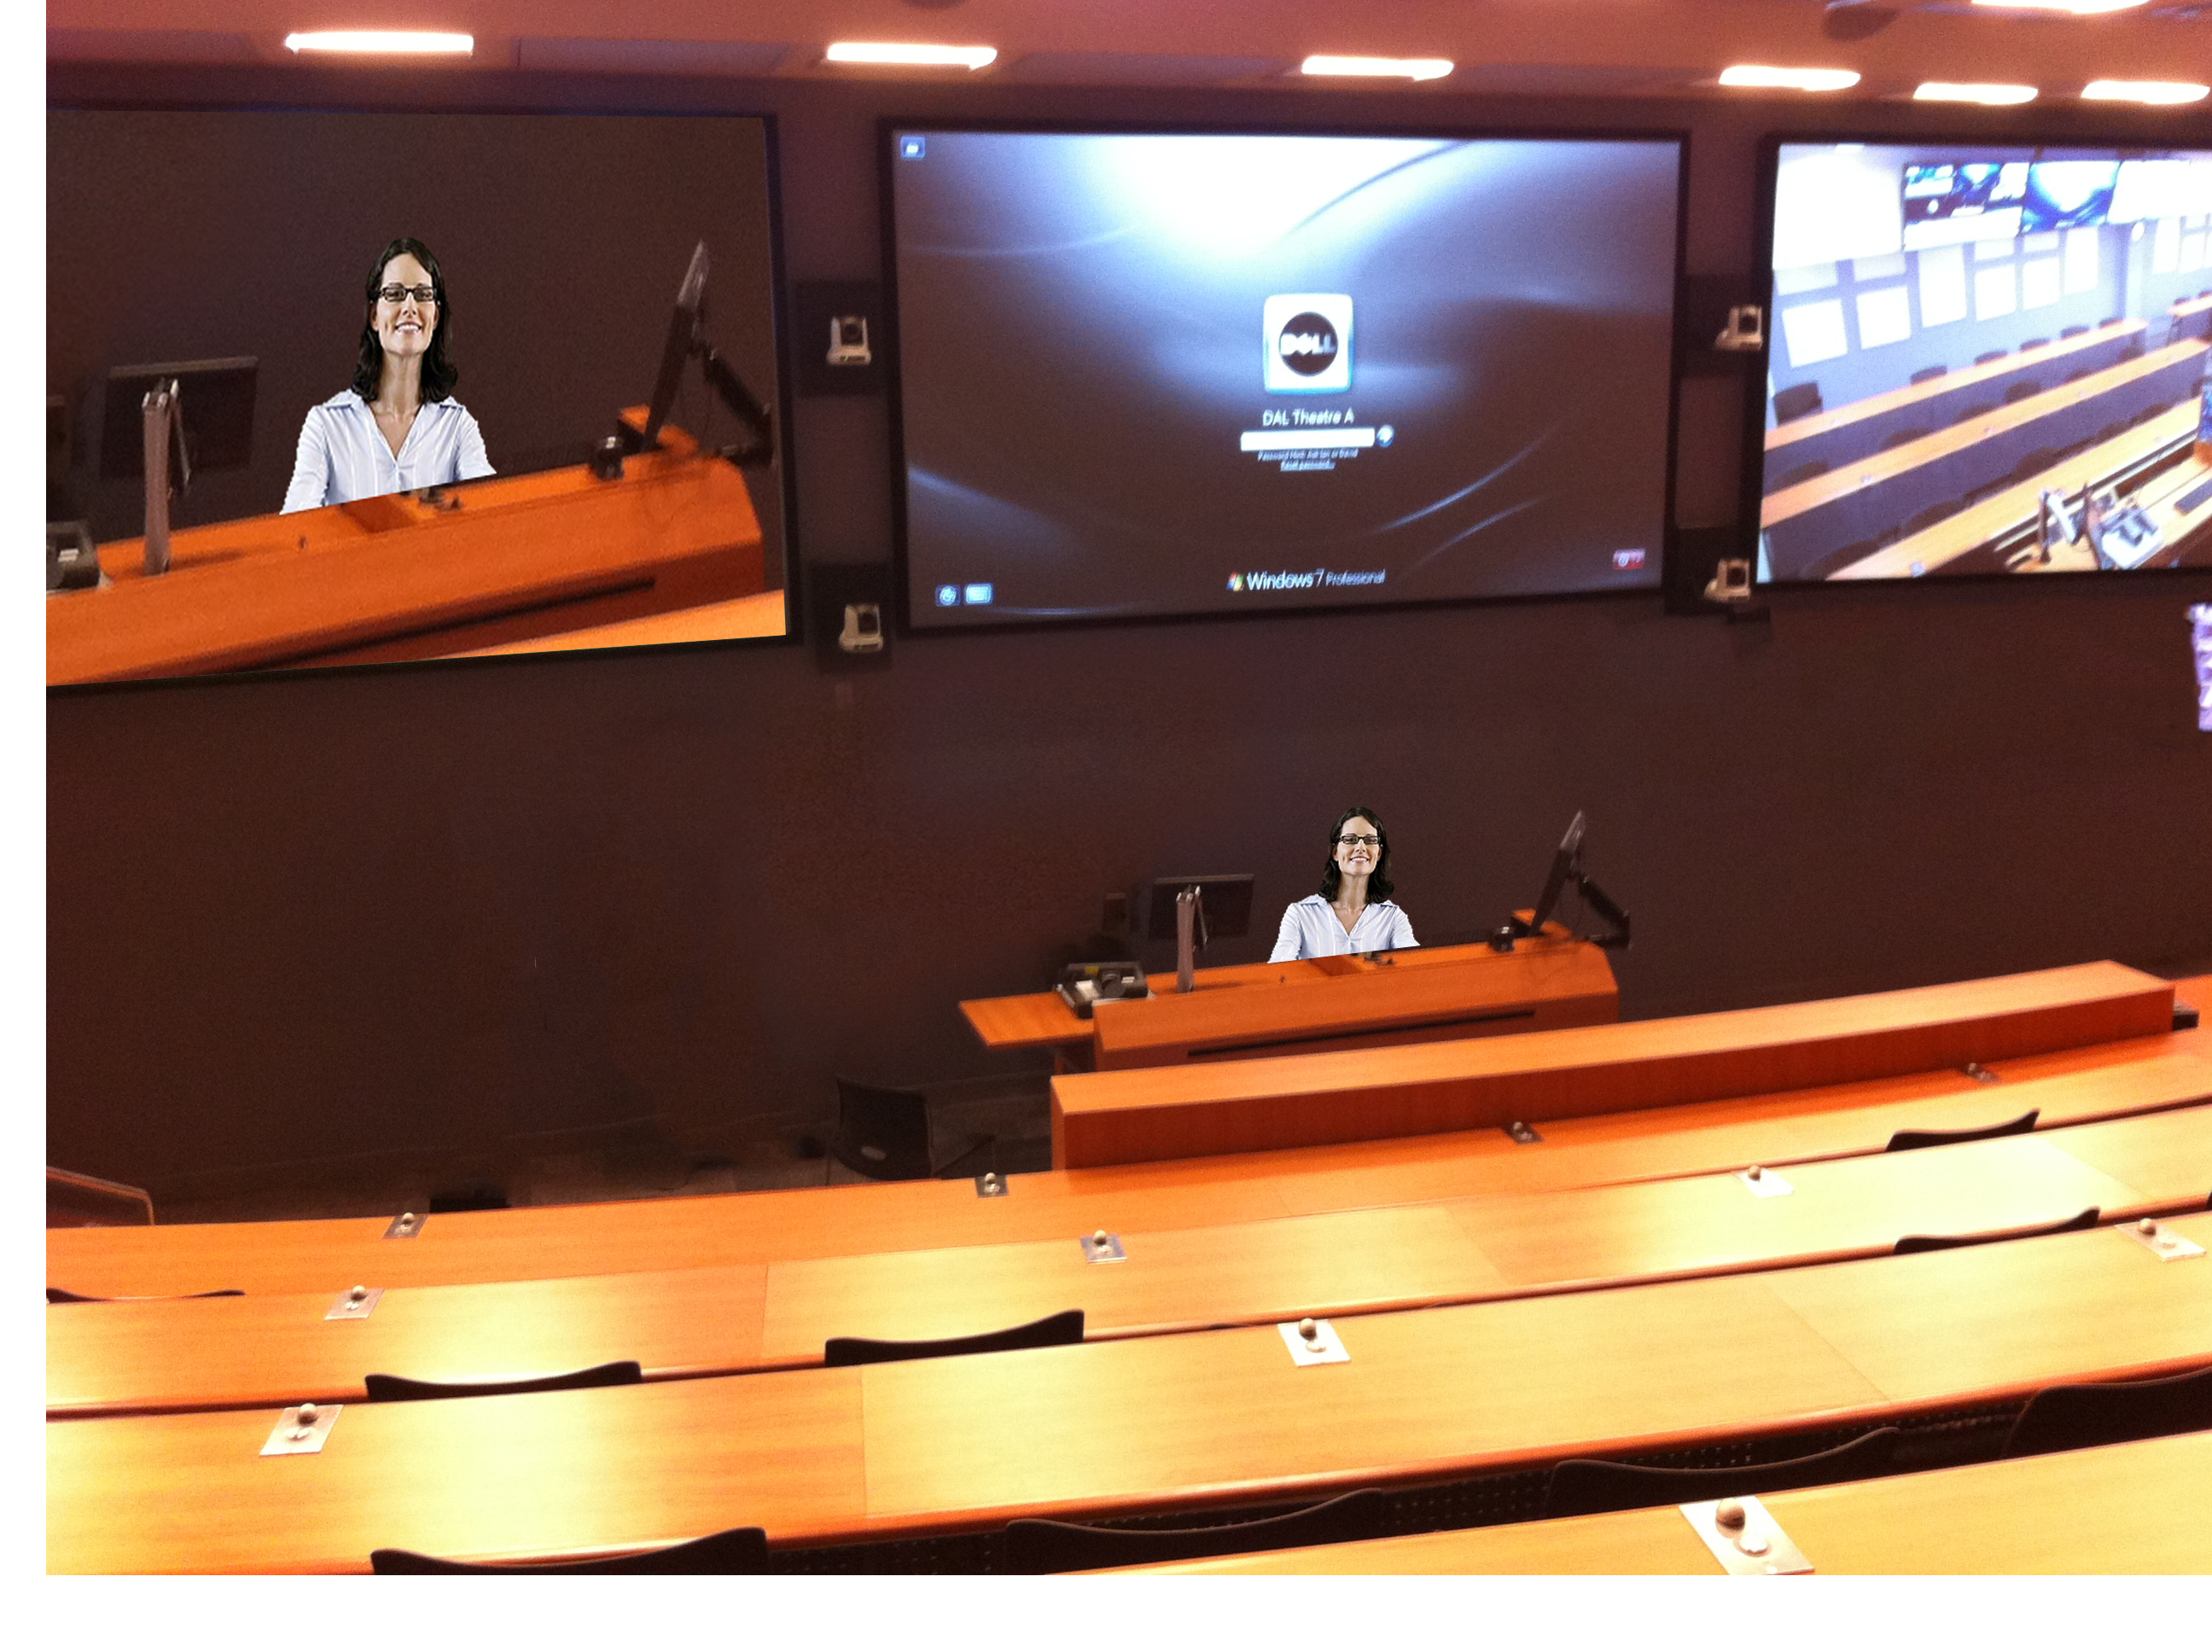 screens in the lecture room